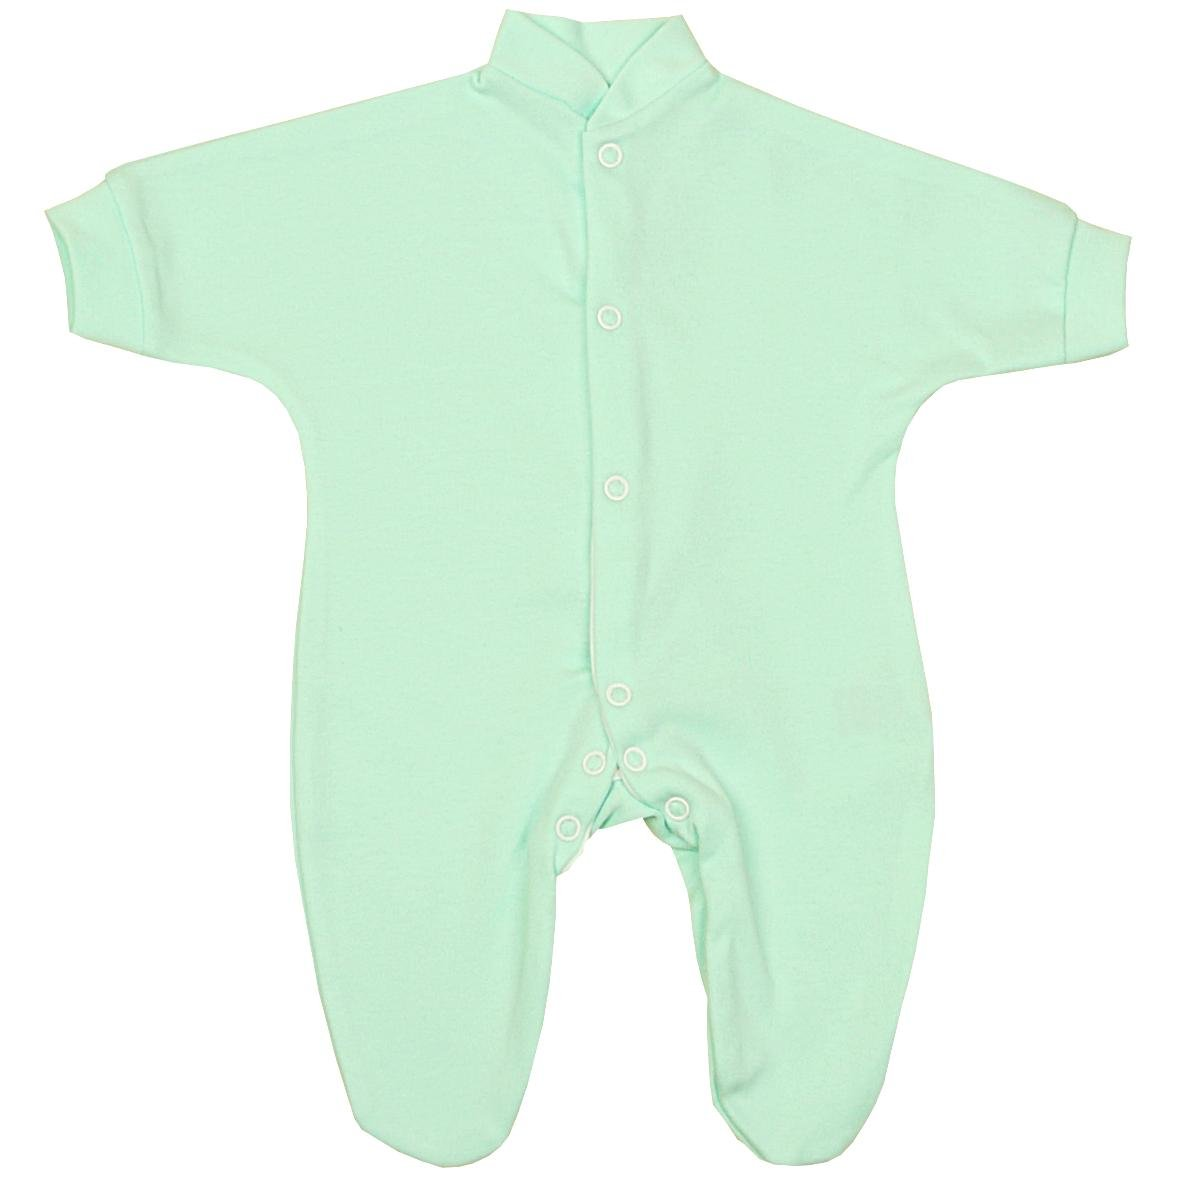 BabyPrem Baby Plain Sleepsuit Premature Clothes 0 - 7.5lb LB012